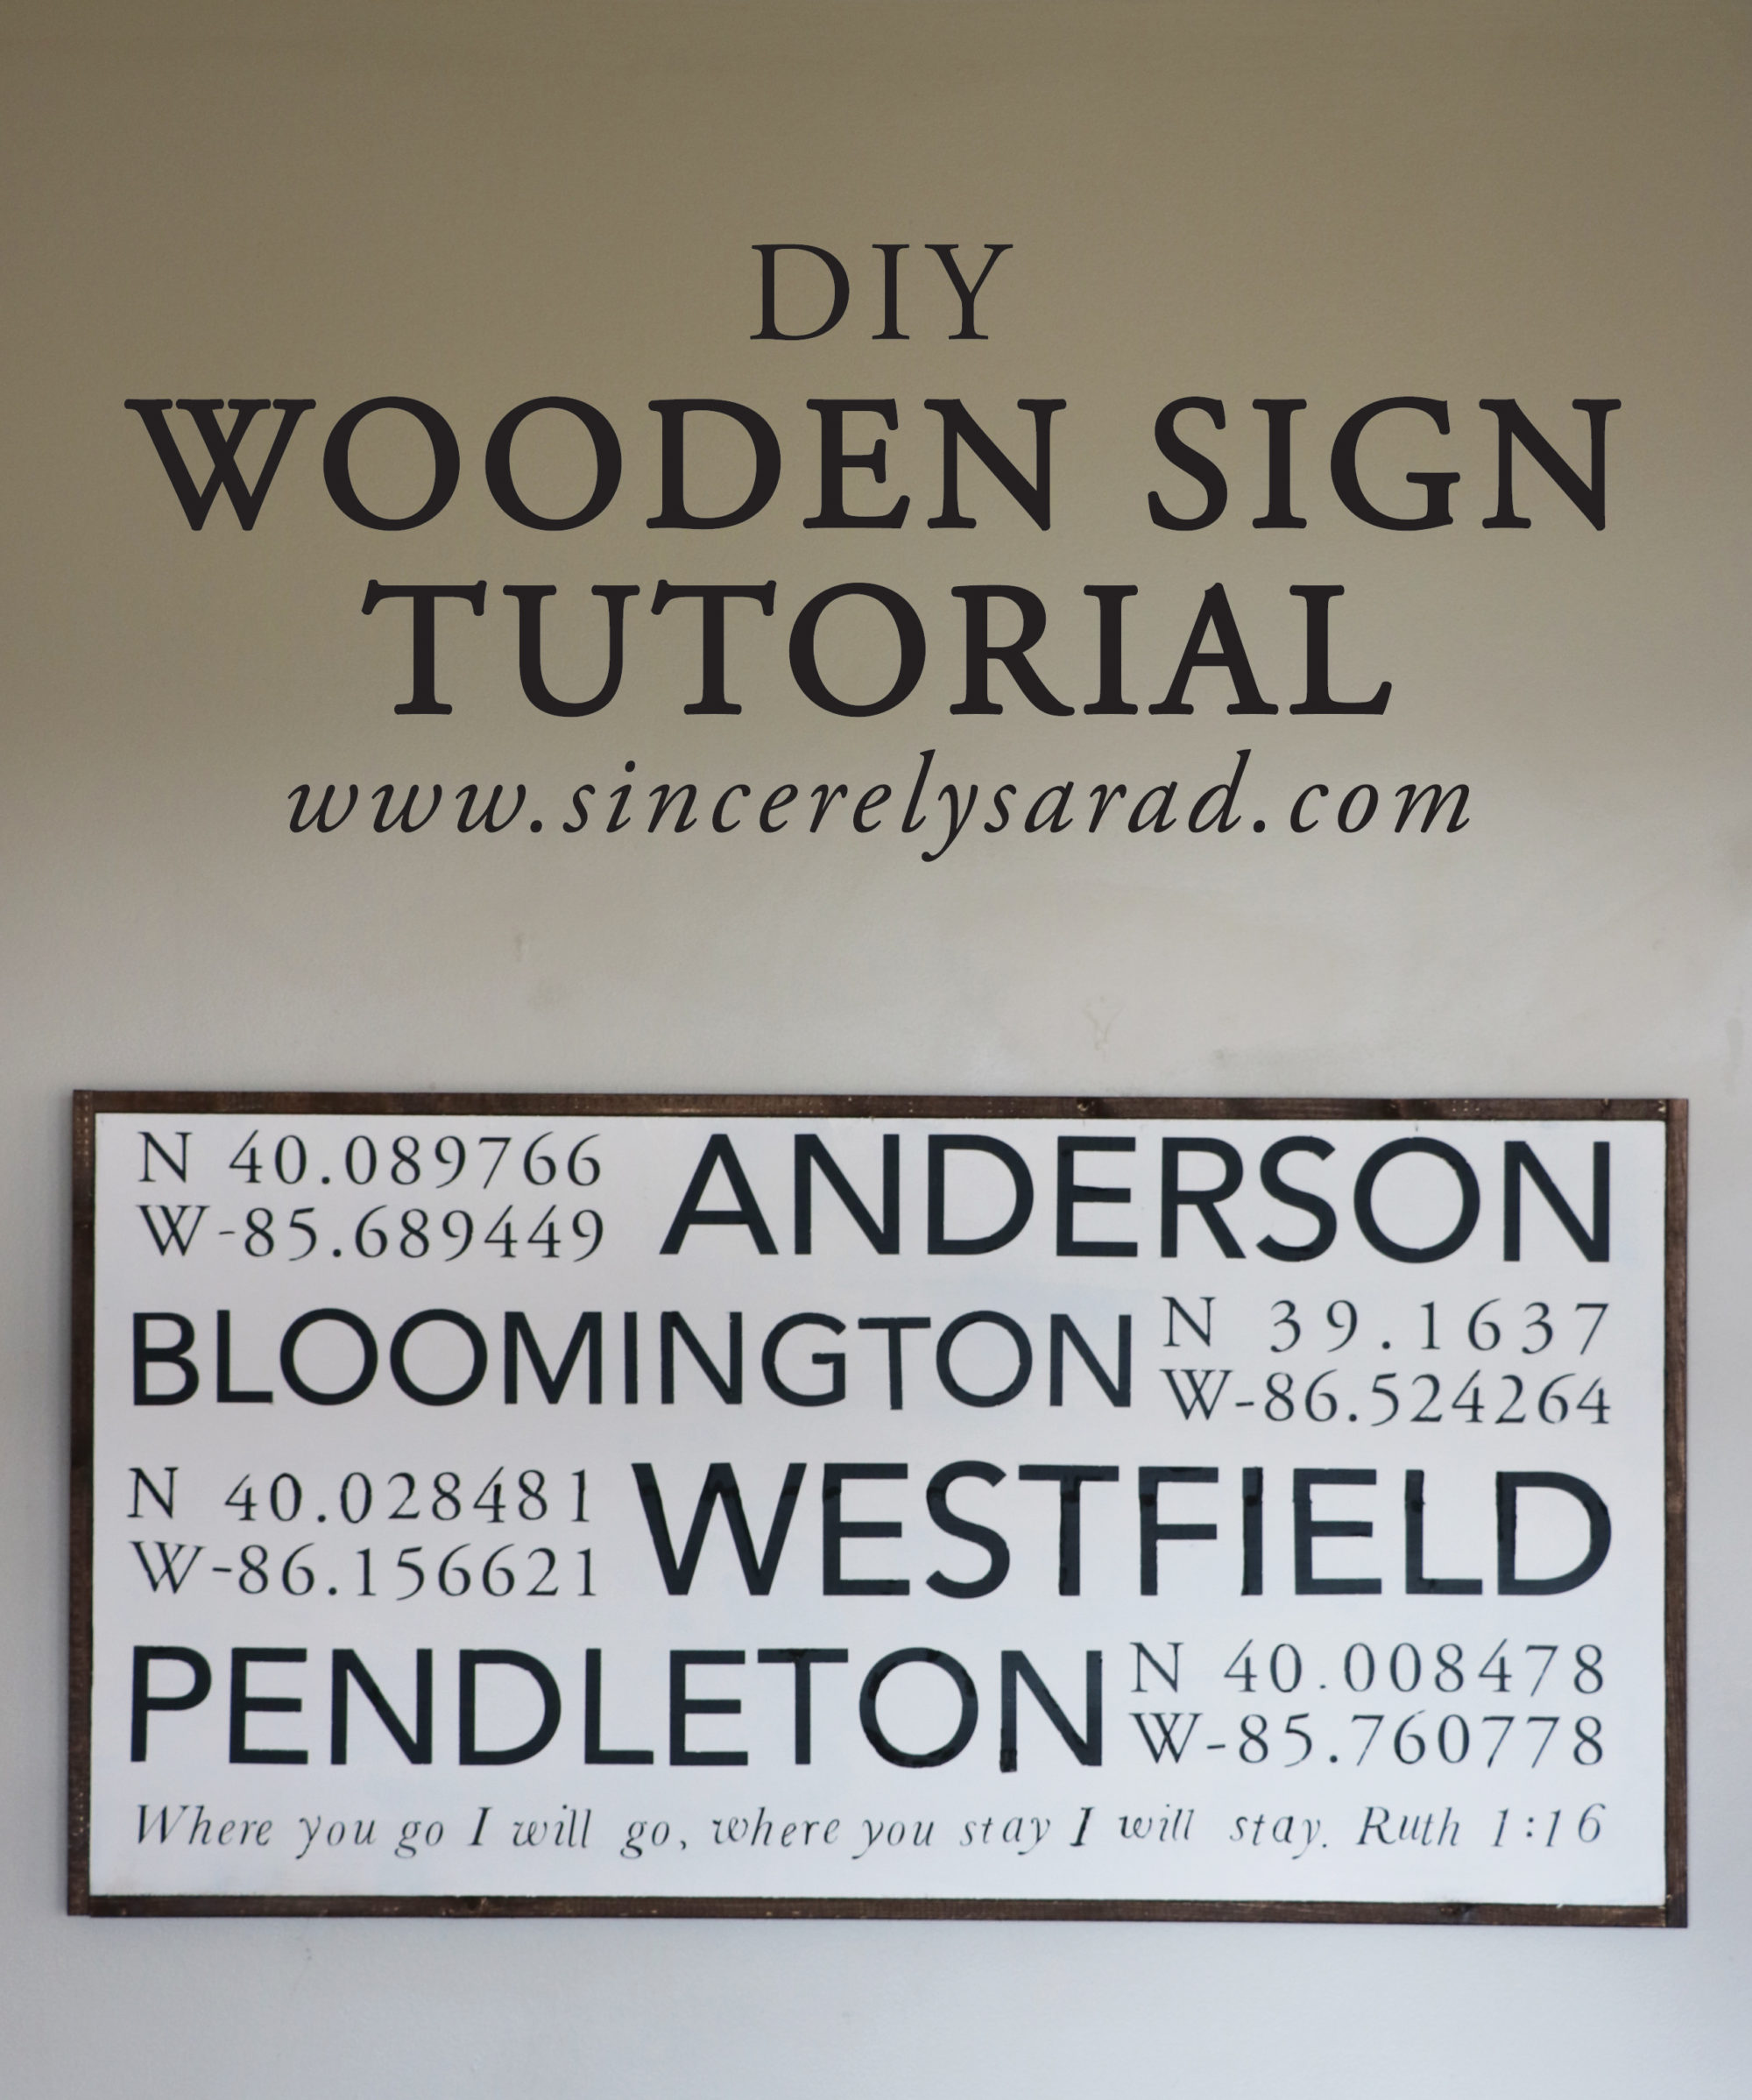 DIY Wooden Sign Tutorial